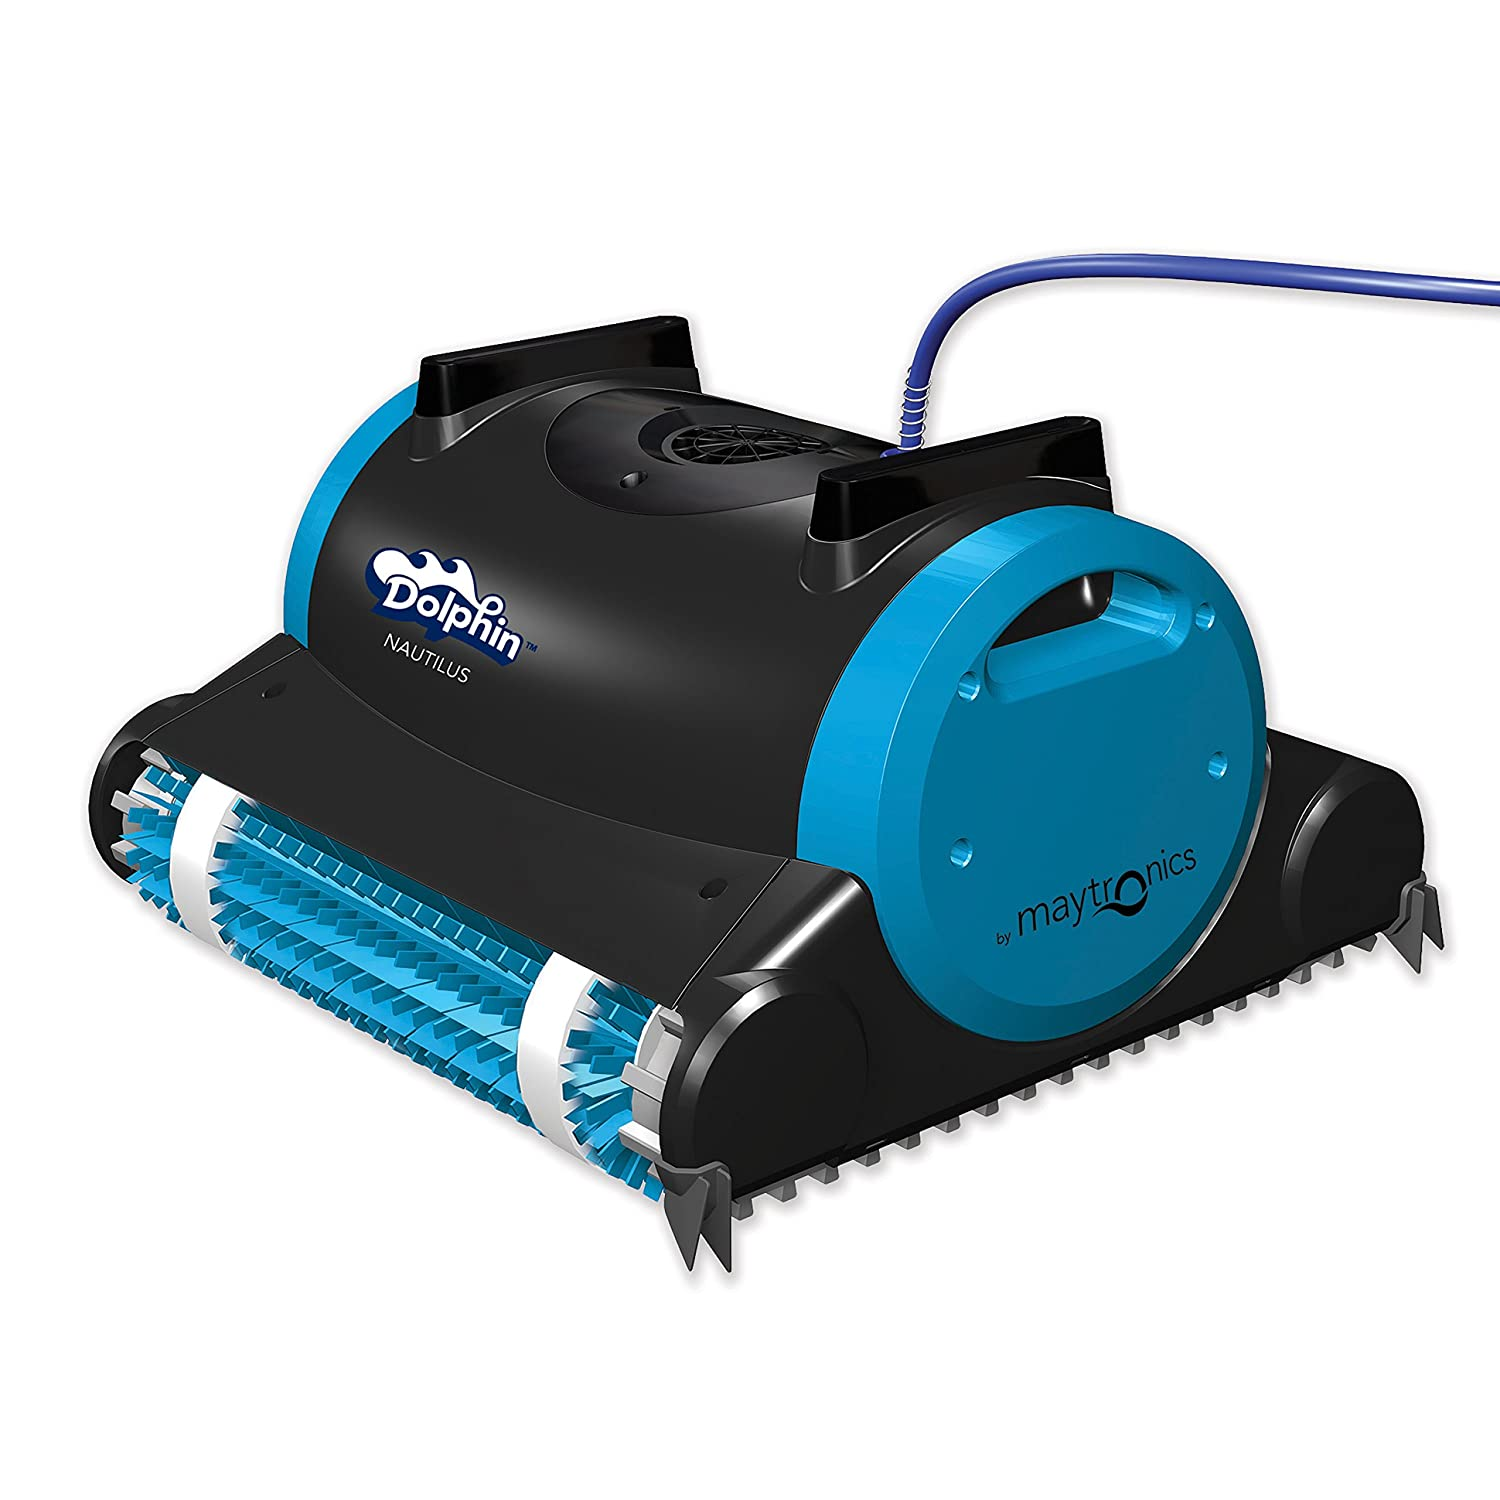 Dolphin Nautilus Robotic In Ground Pool Cleaner with Two Extra Filter Packs - 99996323 Maytronics